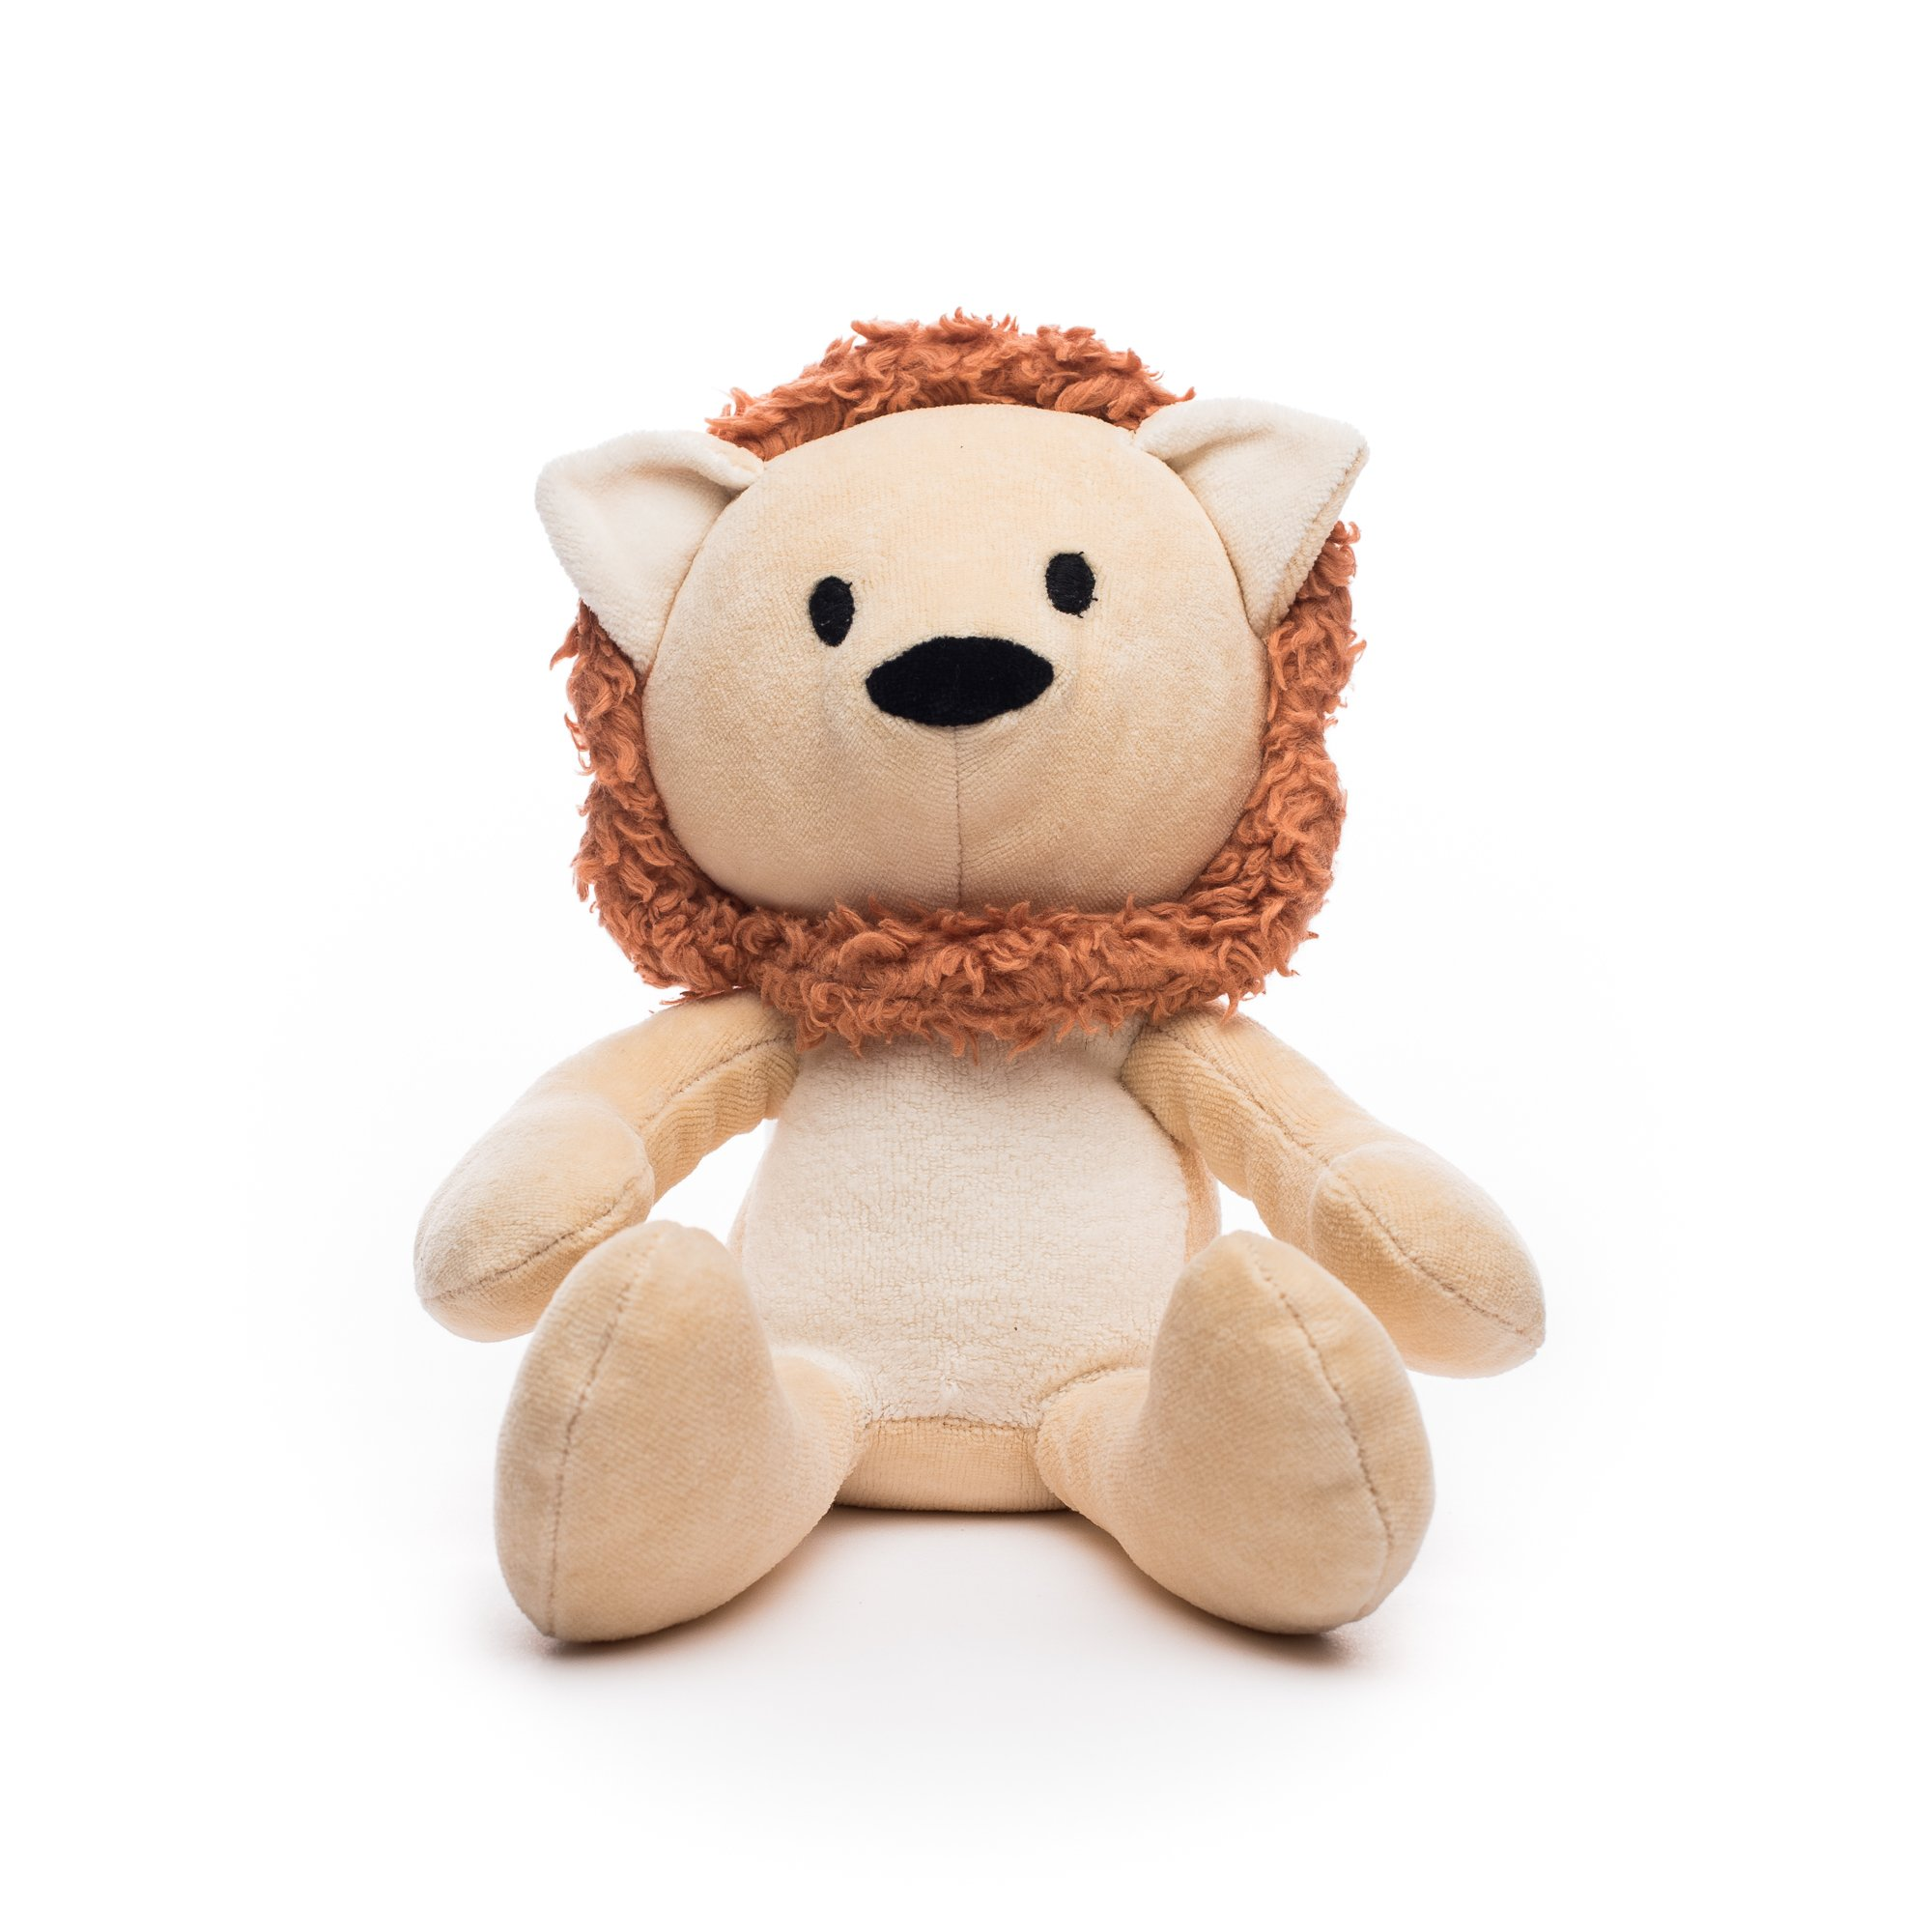 Bears For Humanity Lion Stuffed Animal - Organic Lion is a Non-Toxic, 12'' PlushToy by Bears For Humanity